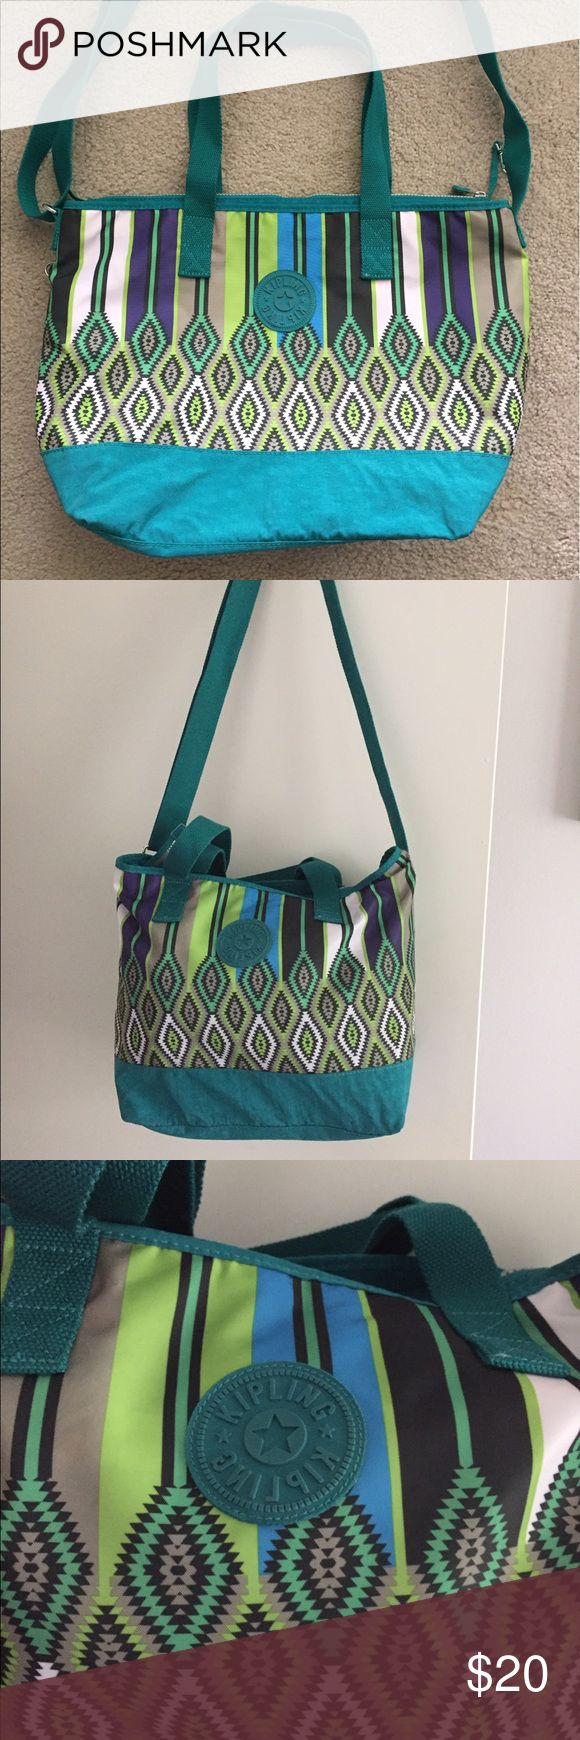 Kipling green tote bag Excellent condition, used very few times. Kipling Bags Totes